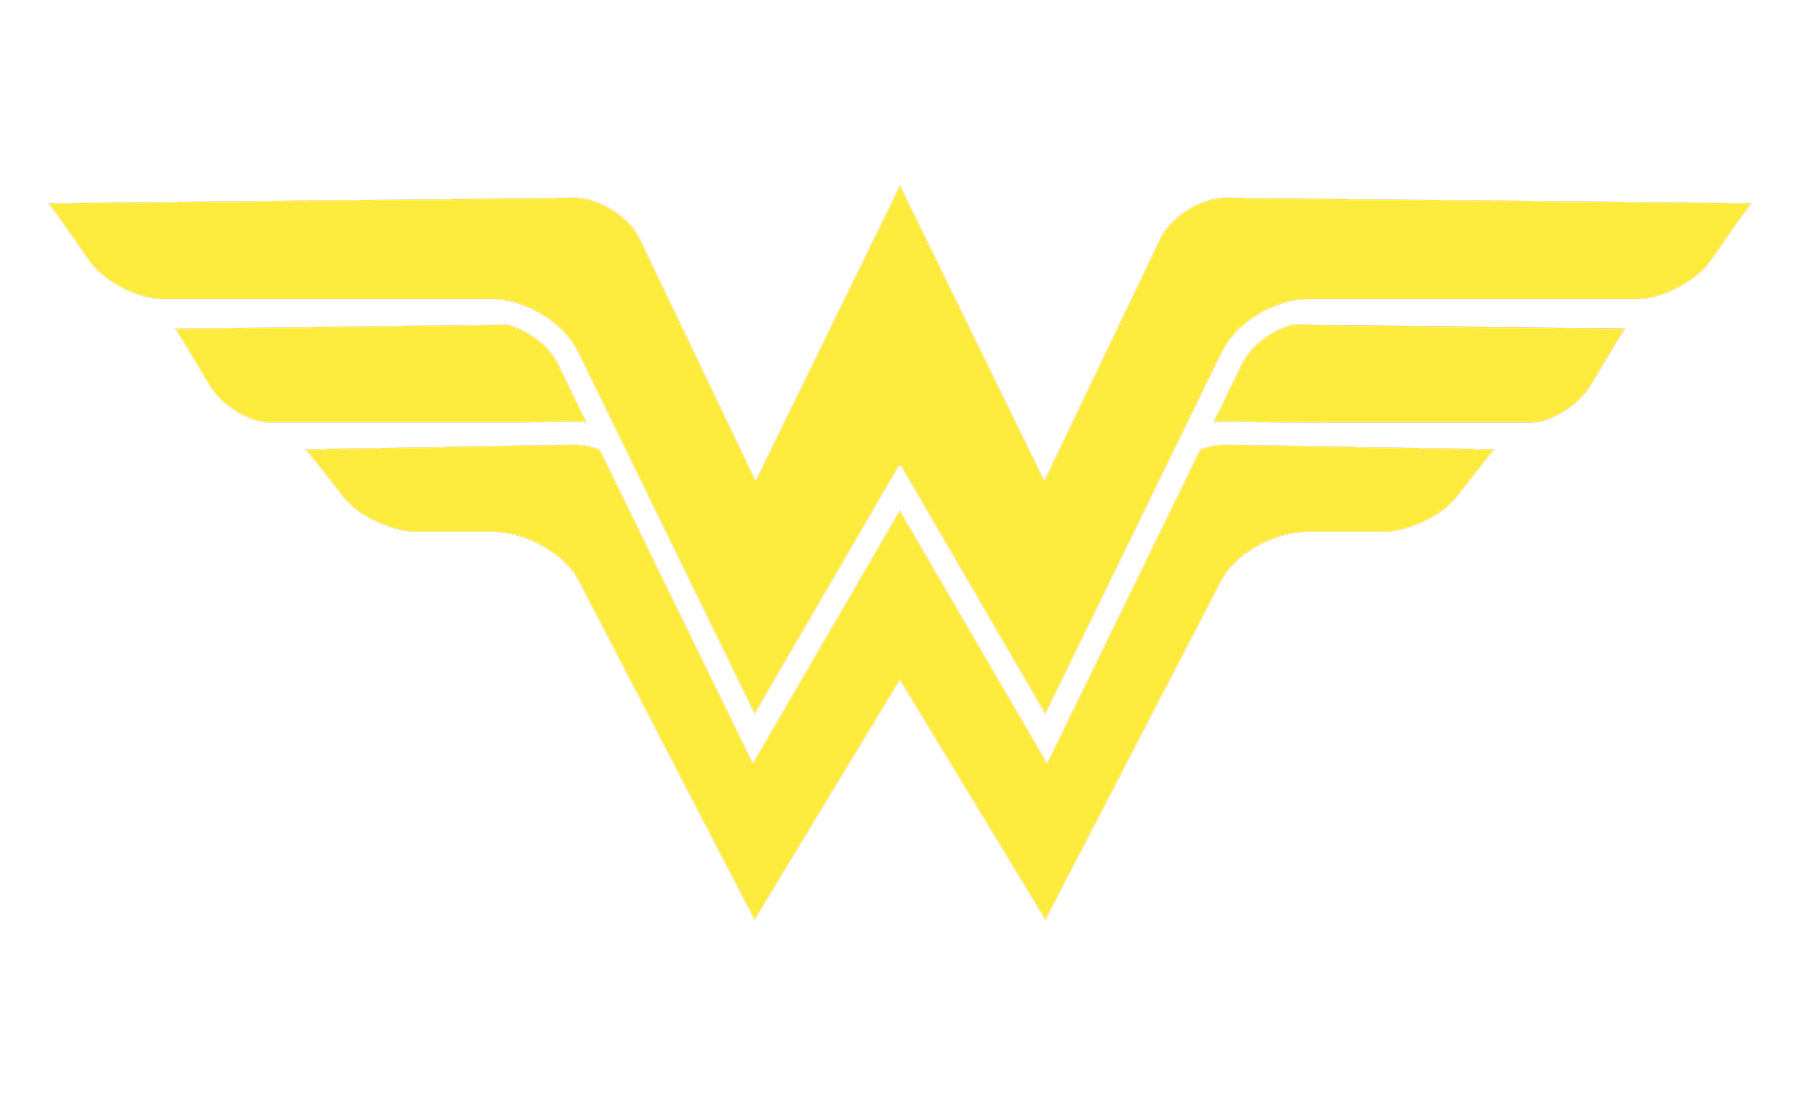 Meaning Wonder Woman logo and symbol.